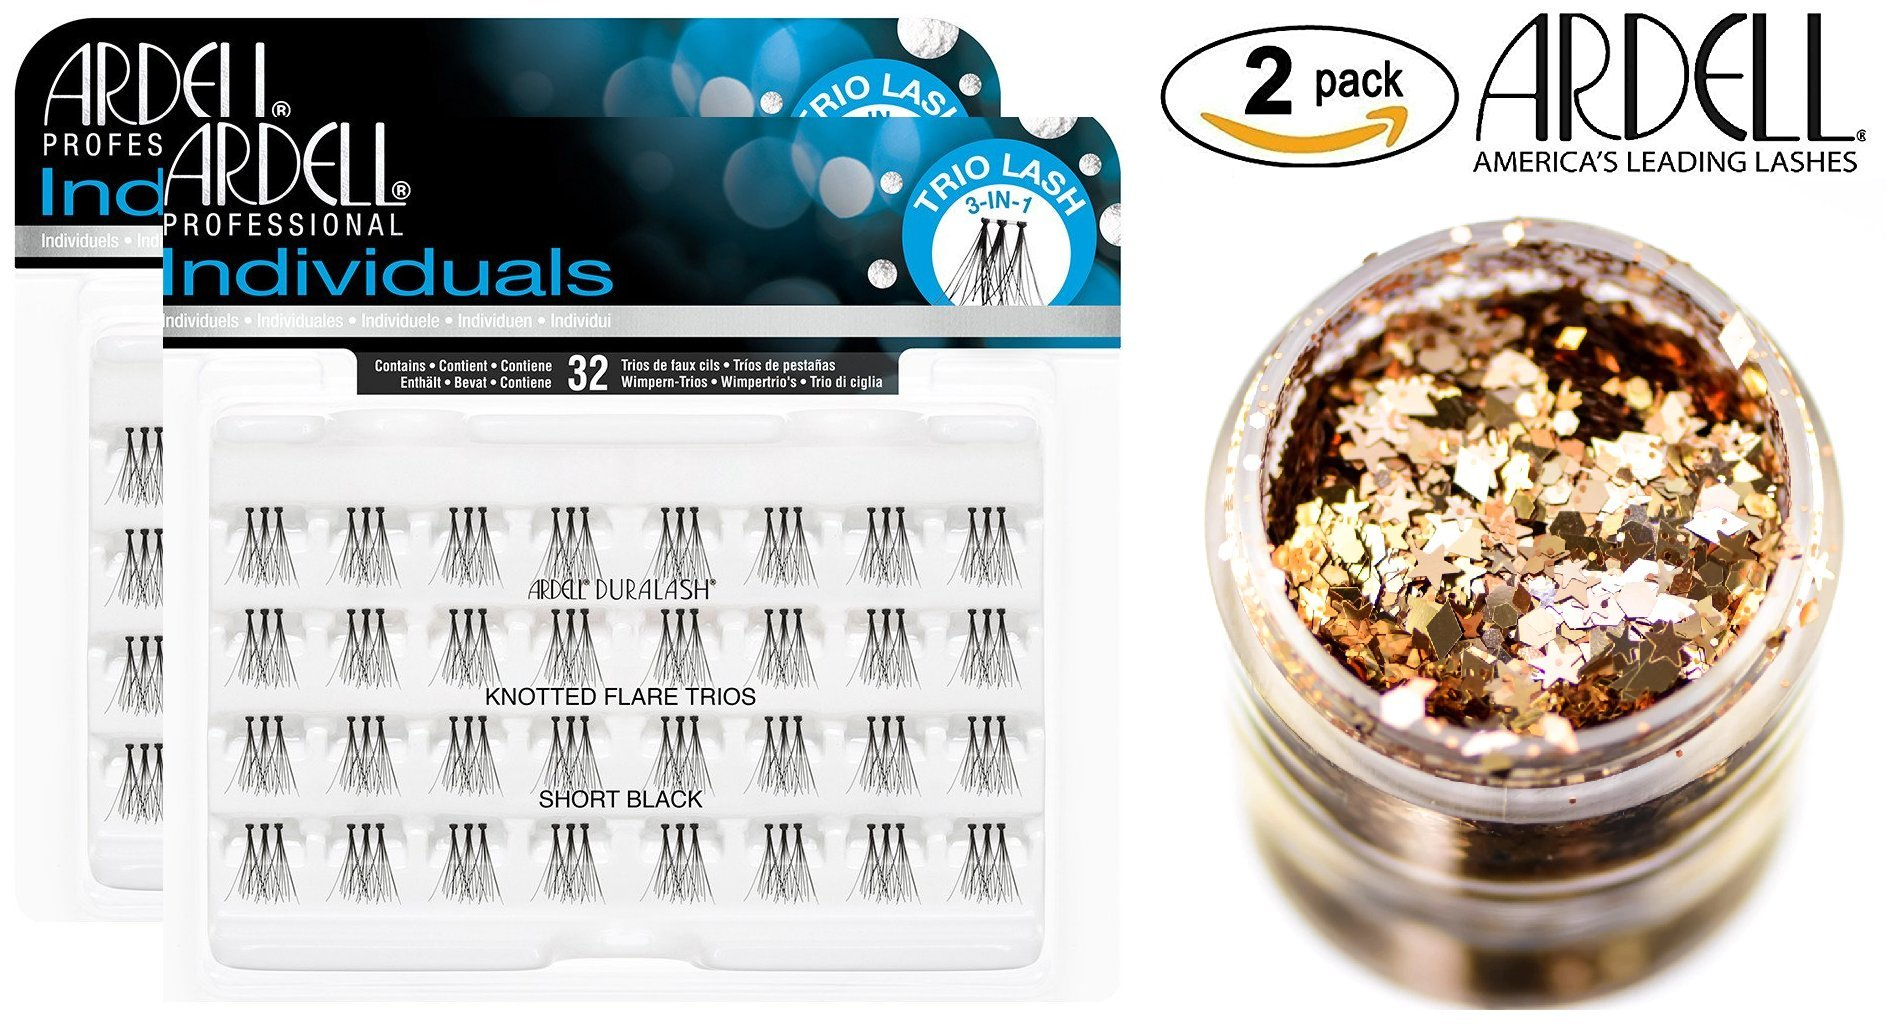 594b2397e74 Ardell DURALASH INDIVIDUALS, KNOTTED FLARES TRIOS, Short Black, Contains 32 TRIO  Lash 3-in-1 Lashes (2-PACK with bonus Skin/Hair GLITTER) (Short Black ...